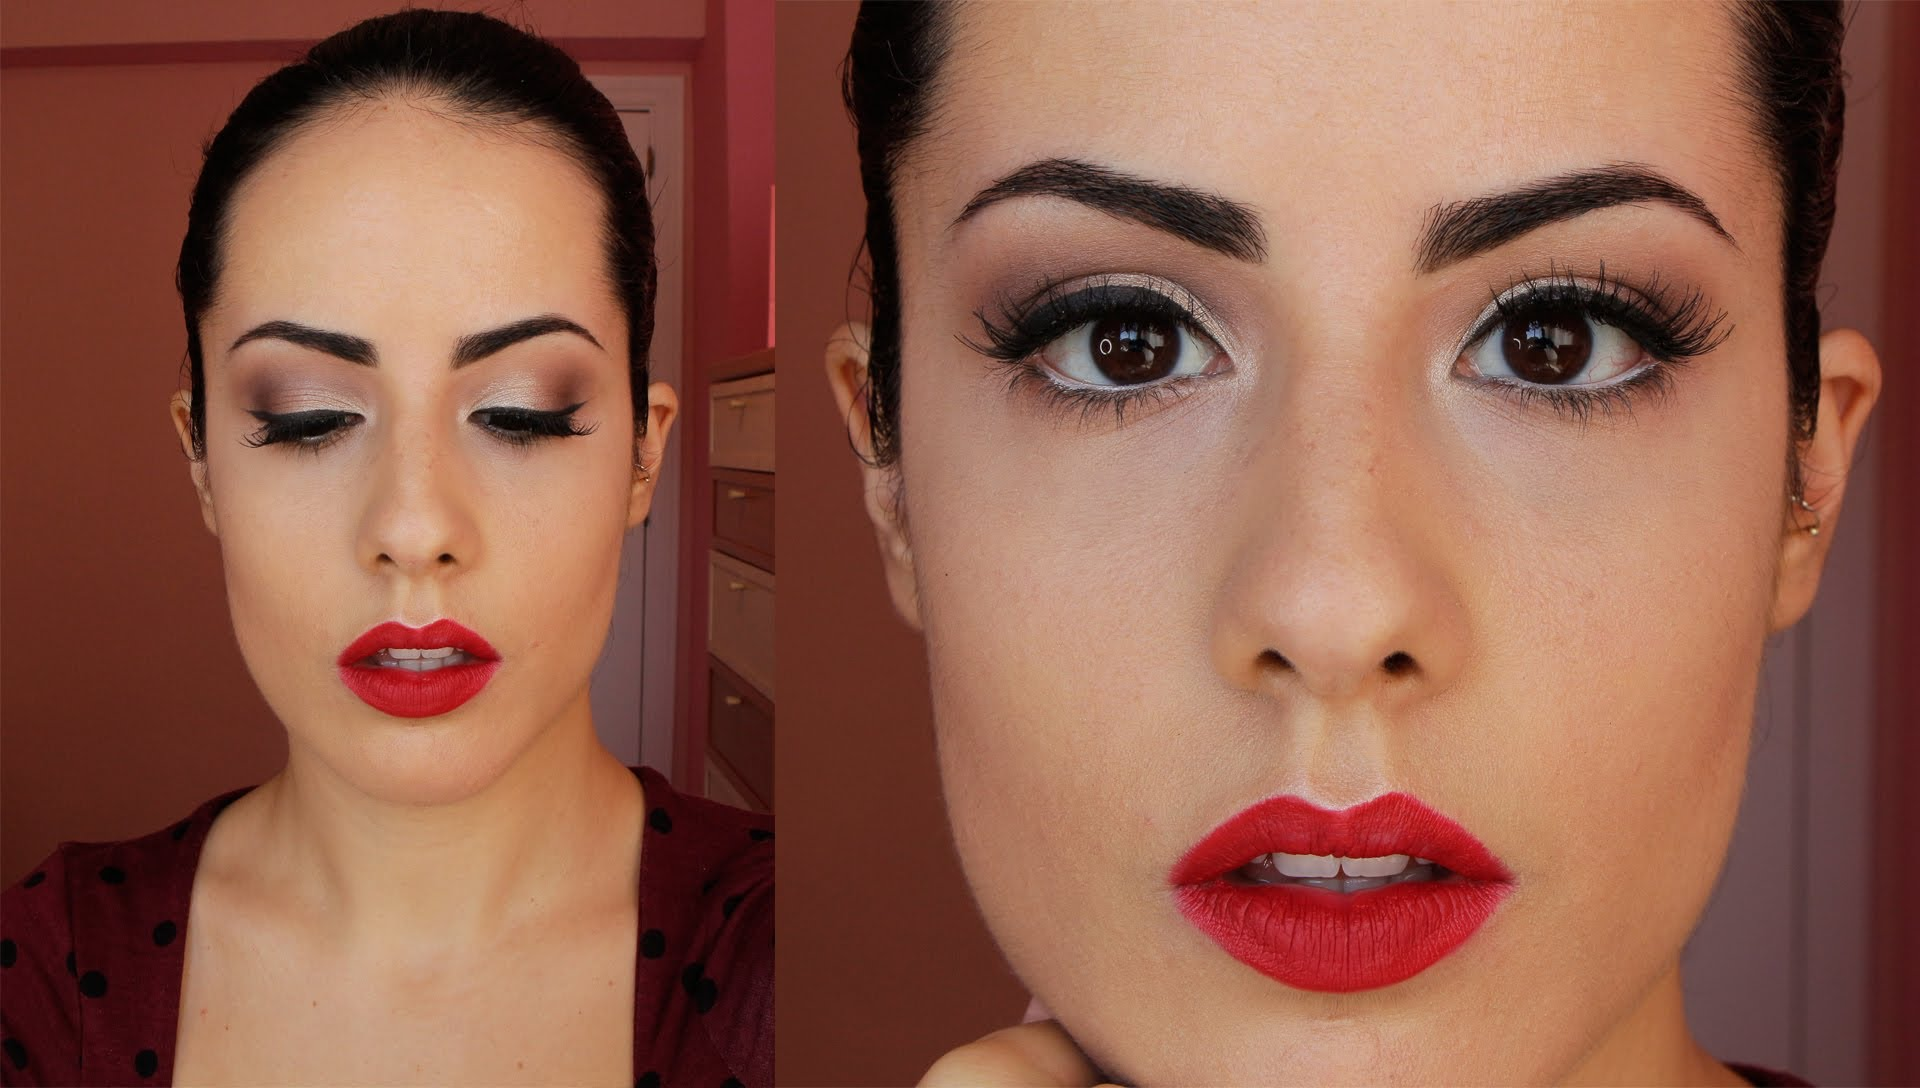 Maquillaje pin up mujer actual - Maquillage pin up ...